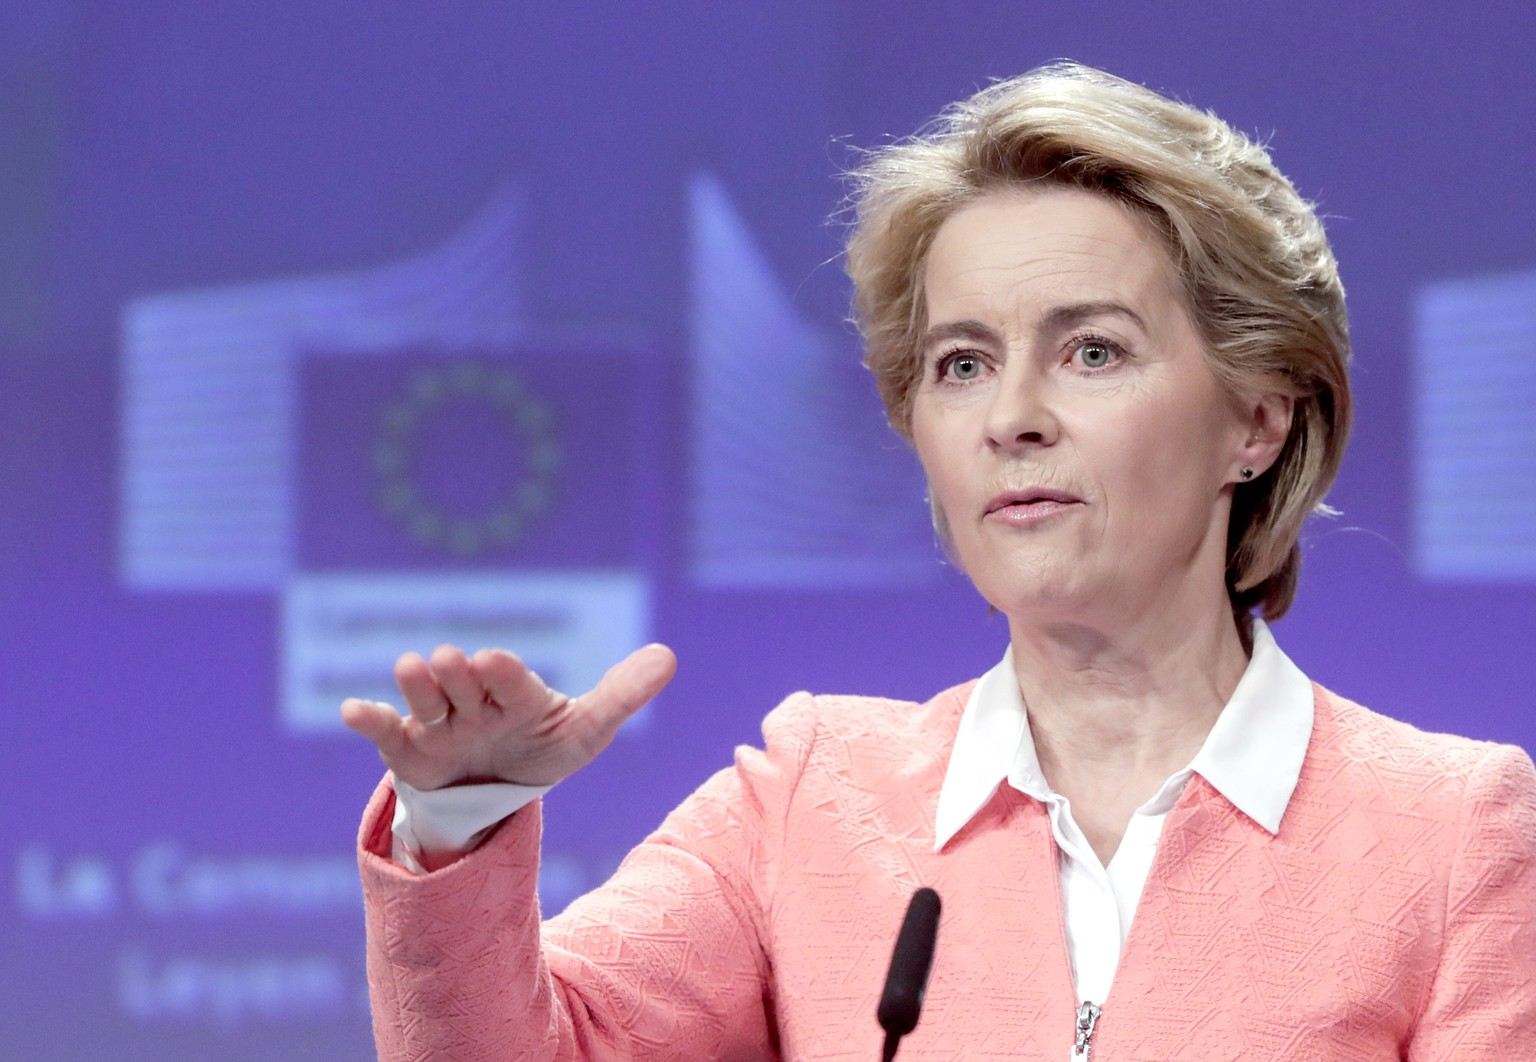 epa07832173 European Commission President-elect Ursula von der Leyen holds a press conference announcing her future team, at the European Commission in Brussels, Belgium, 10 September 2019. Von der Leyen, who will assume office on 01 November 2019, made public the assignments of all the portfolios to the Commissioners-designate (2019-2024).  EPA/OLIVIER HOSLET